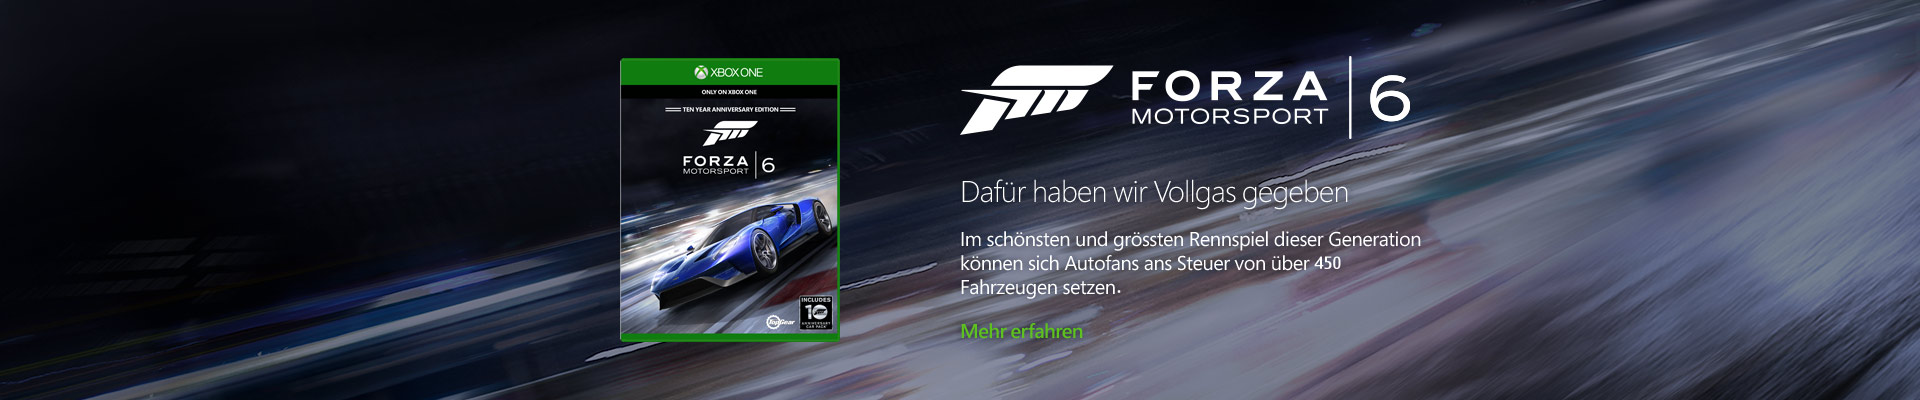 Forza 6 game